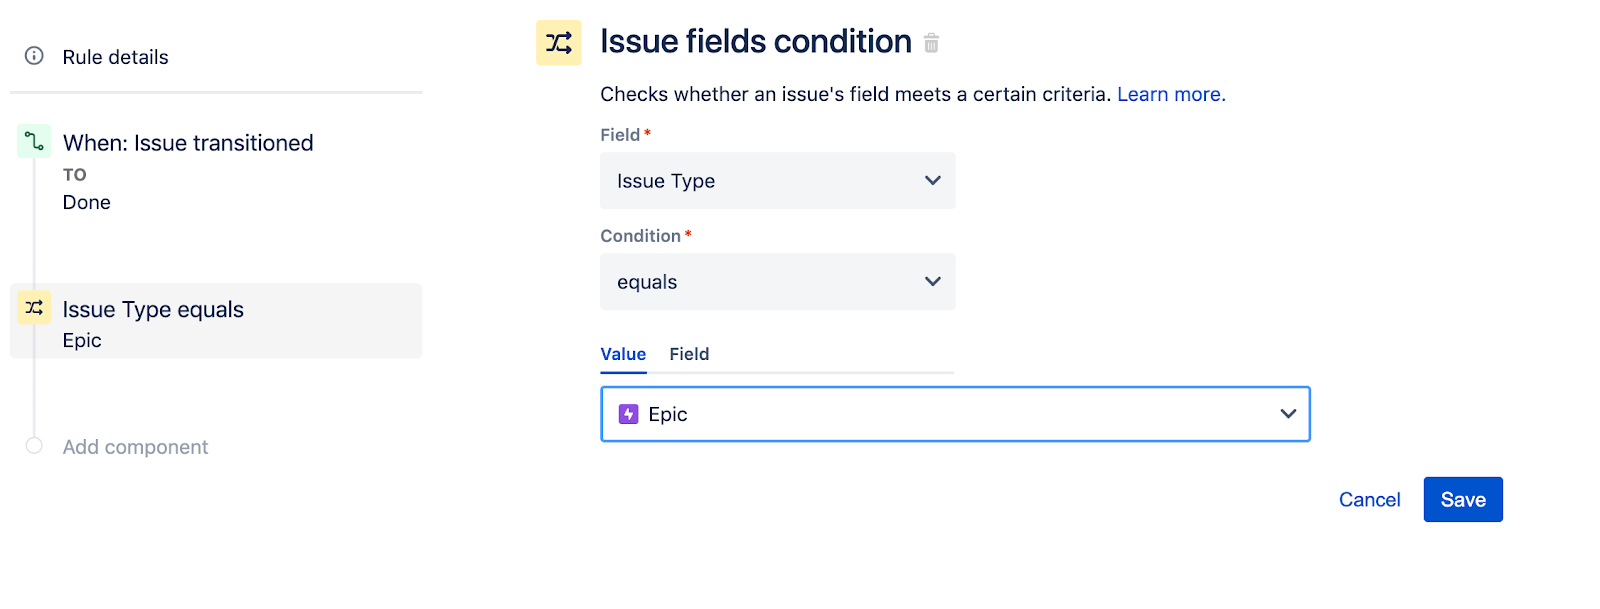 Issue fields condition configuration screen